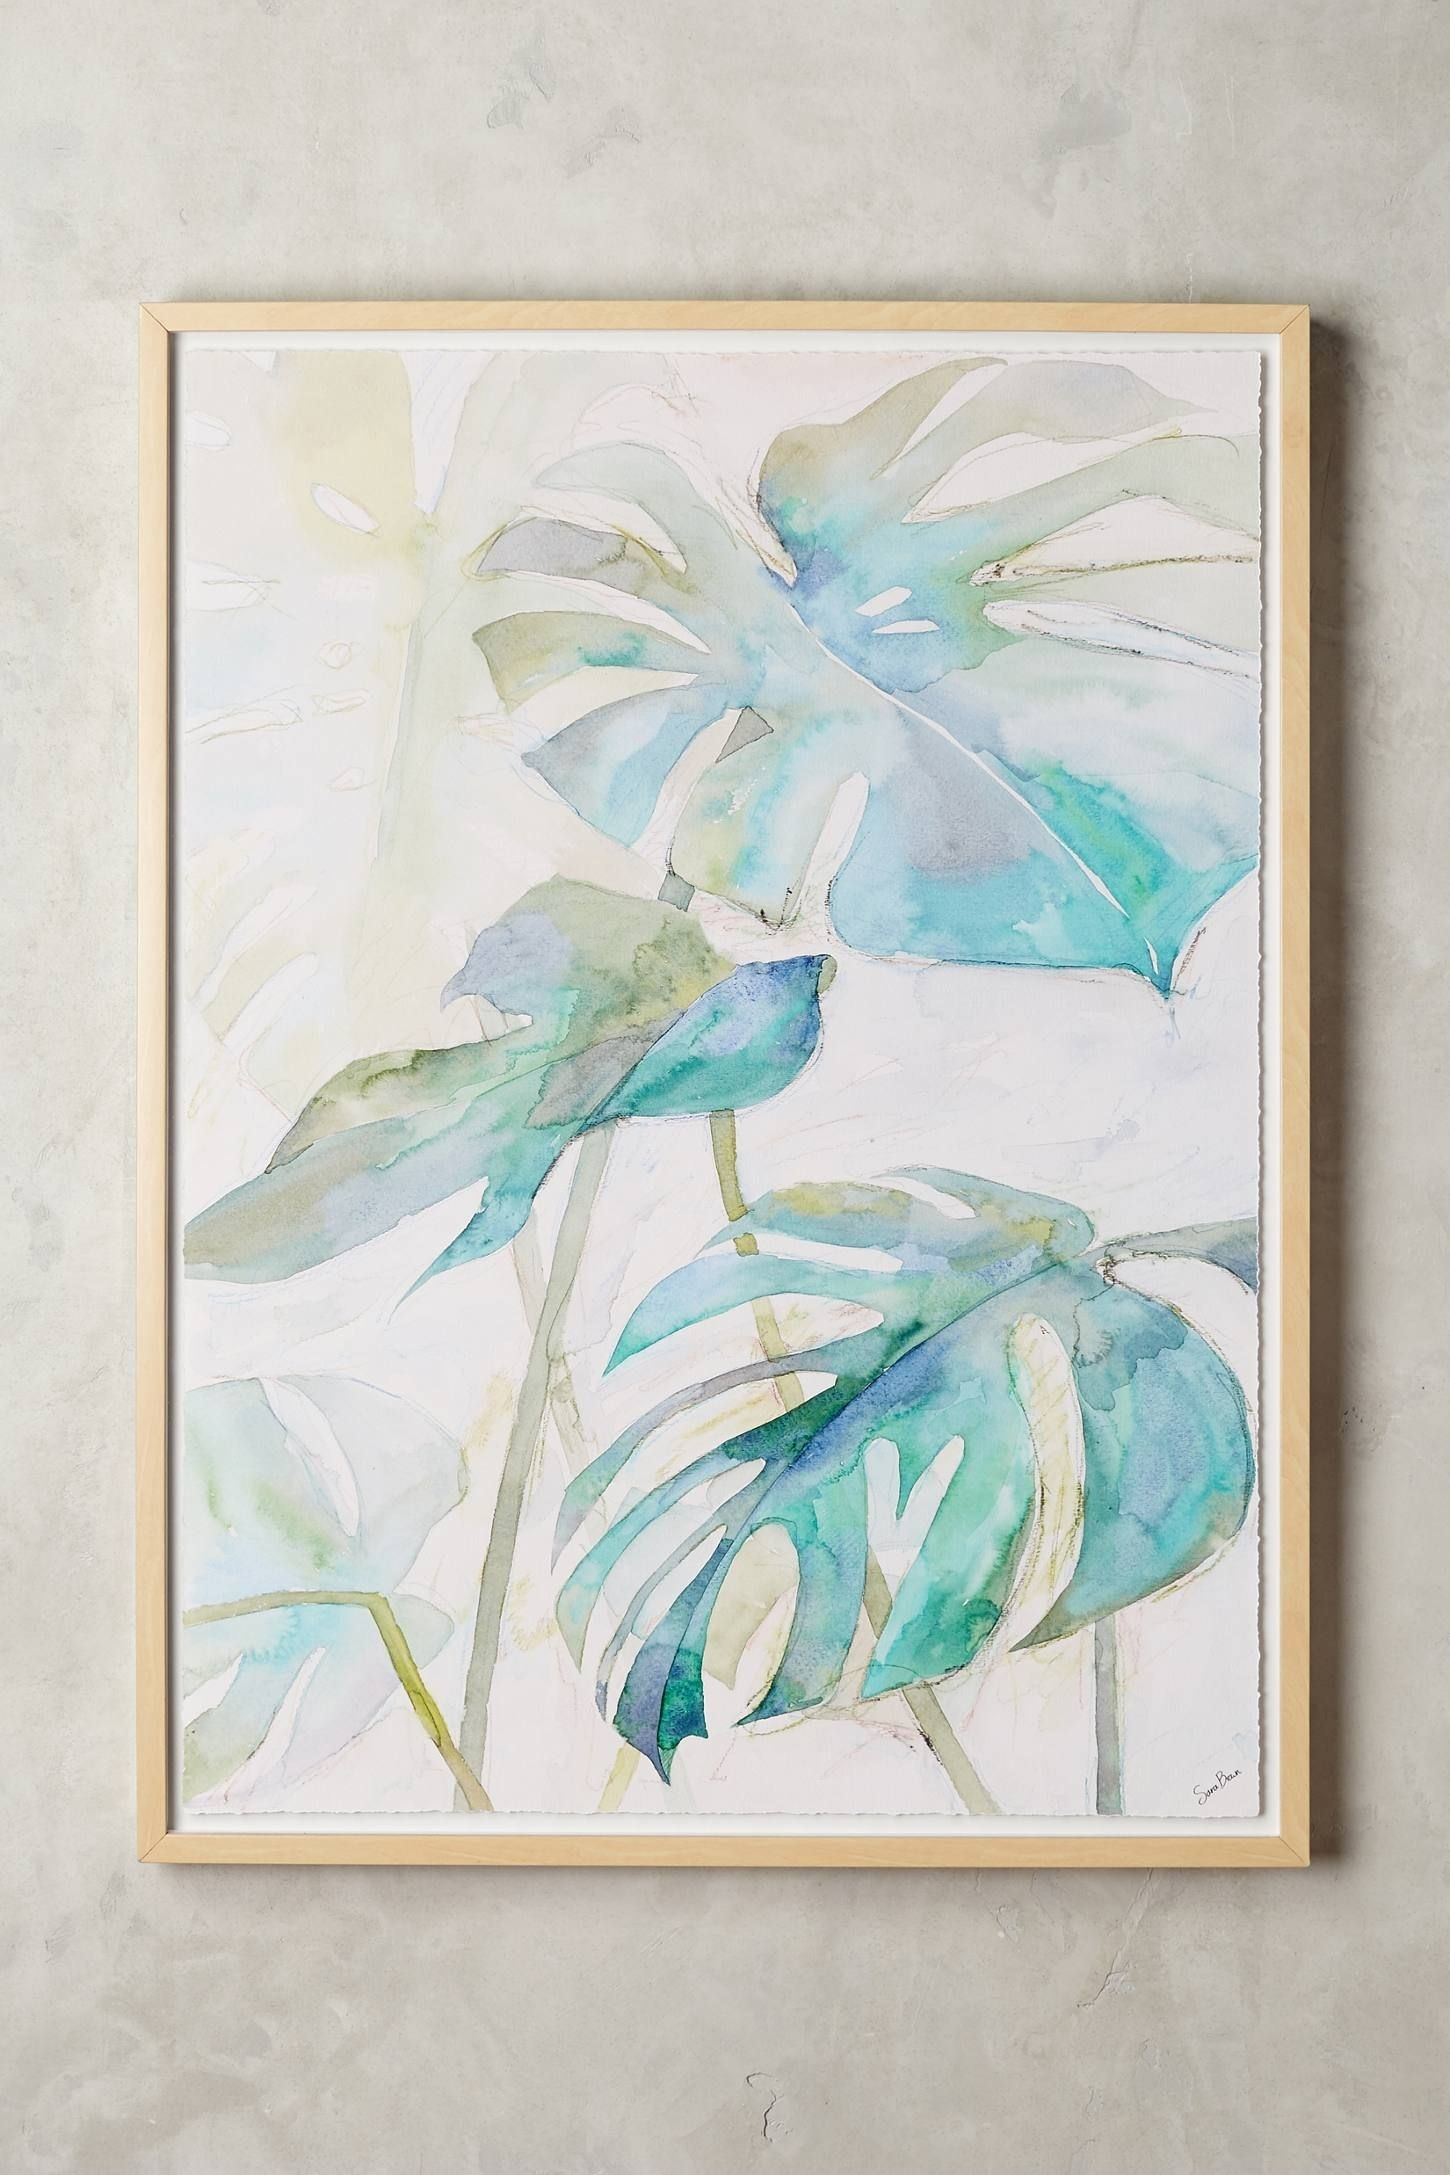 Tropicales Wall Art | Pinterest | Walls, Watercolor And Artwork Pertaining To Most Up To Date Anthropologie Wall Art (Gallery 11 of 20)